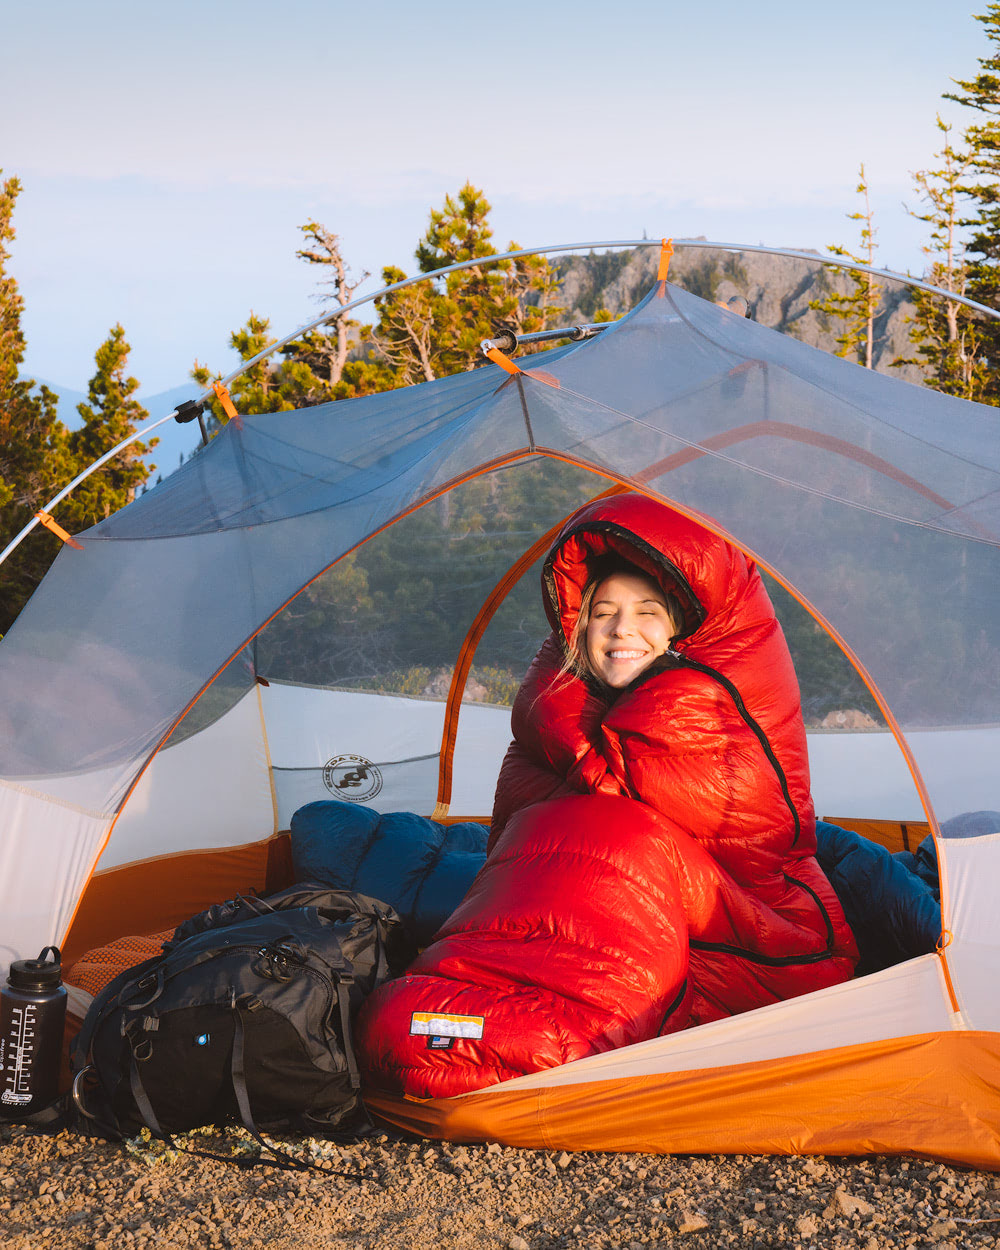 How To Get Over Your Fears of First Time Backcountry Camping - Sleeping In A Tent